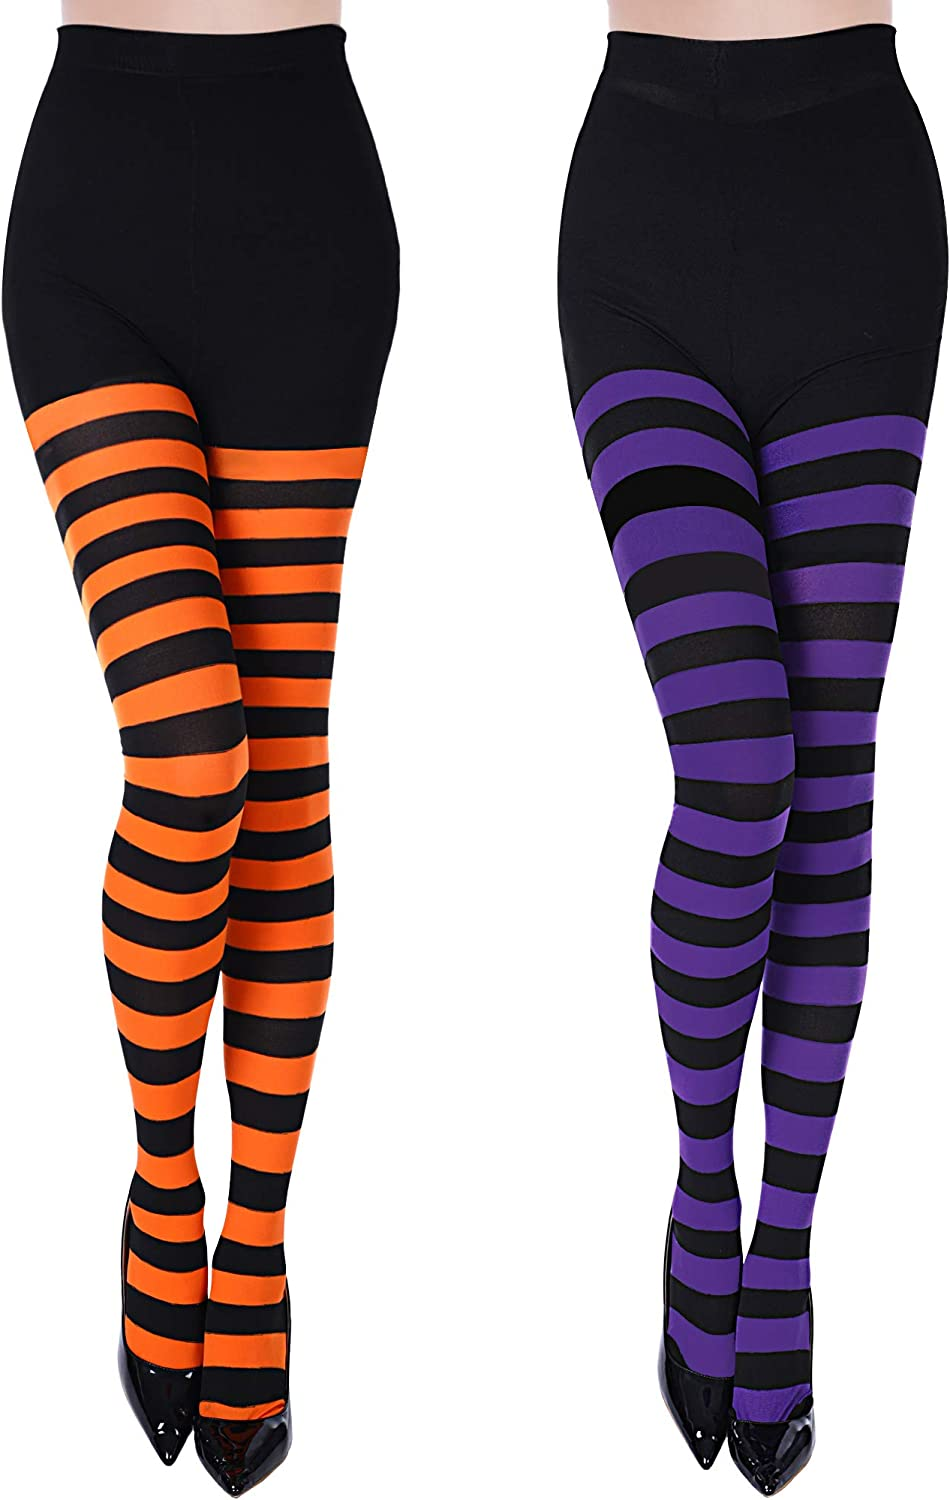 2 Pieces Striped Tights Solid Color Legging Tights Women Footed Tights for Halloween (Color Set 1)